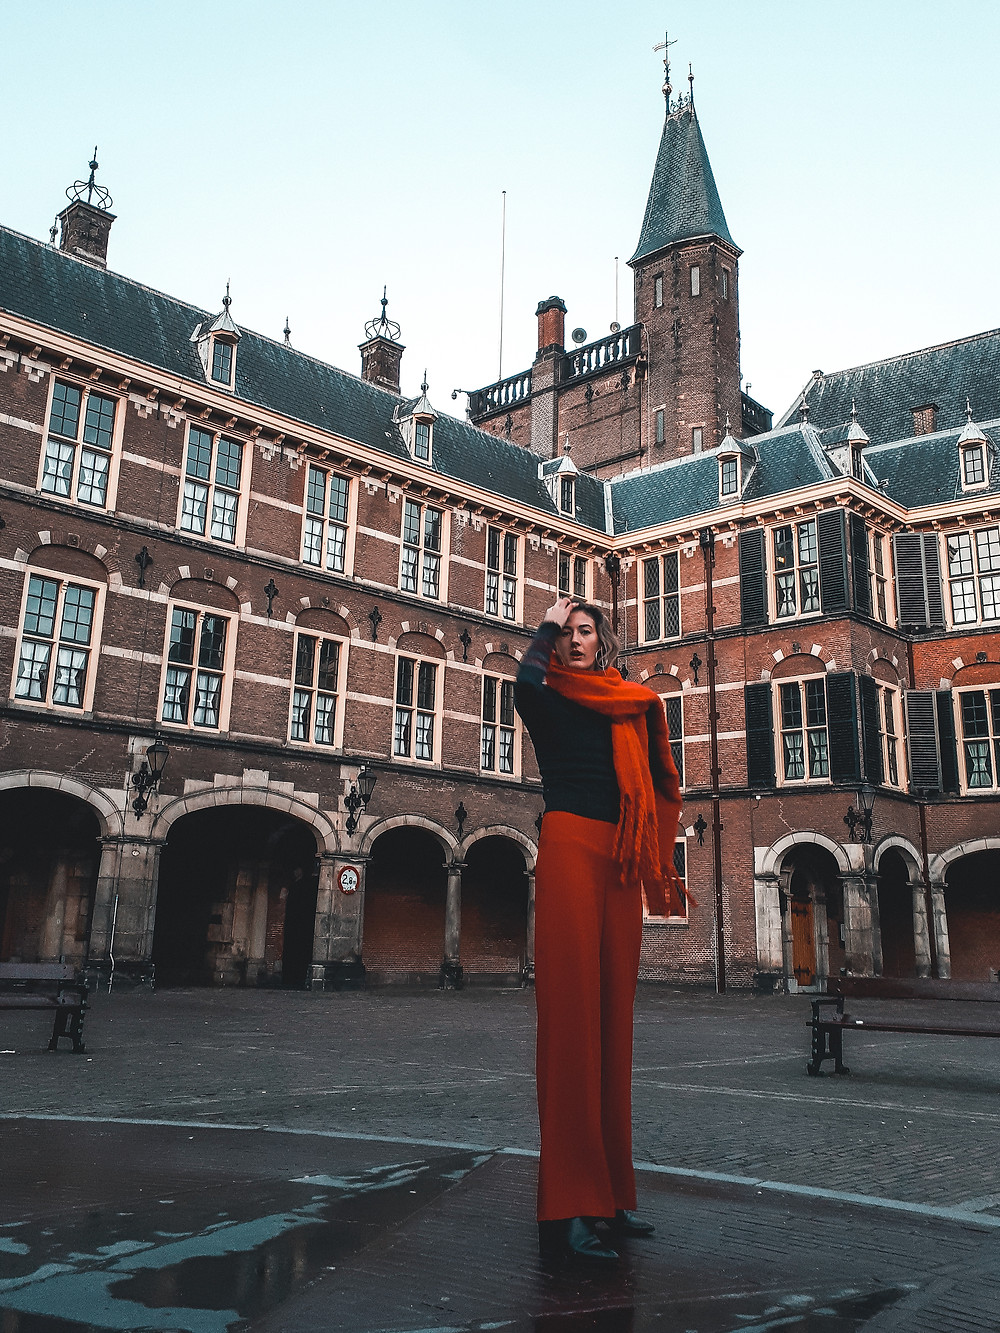 The Inner Court (Binnenhof) The Hague on an early morning